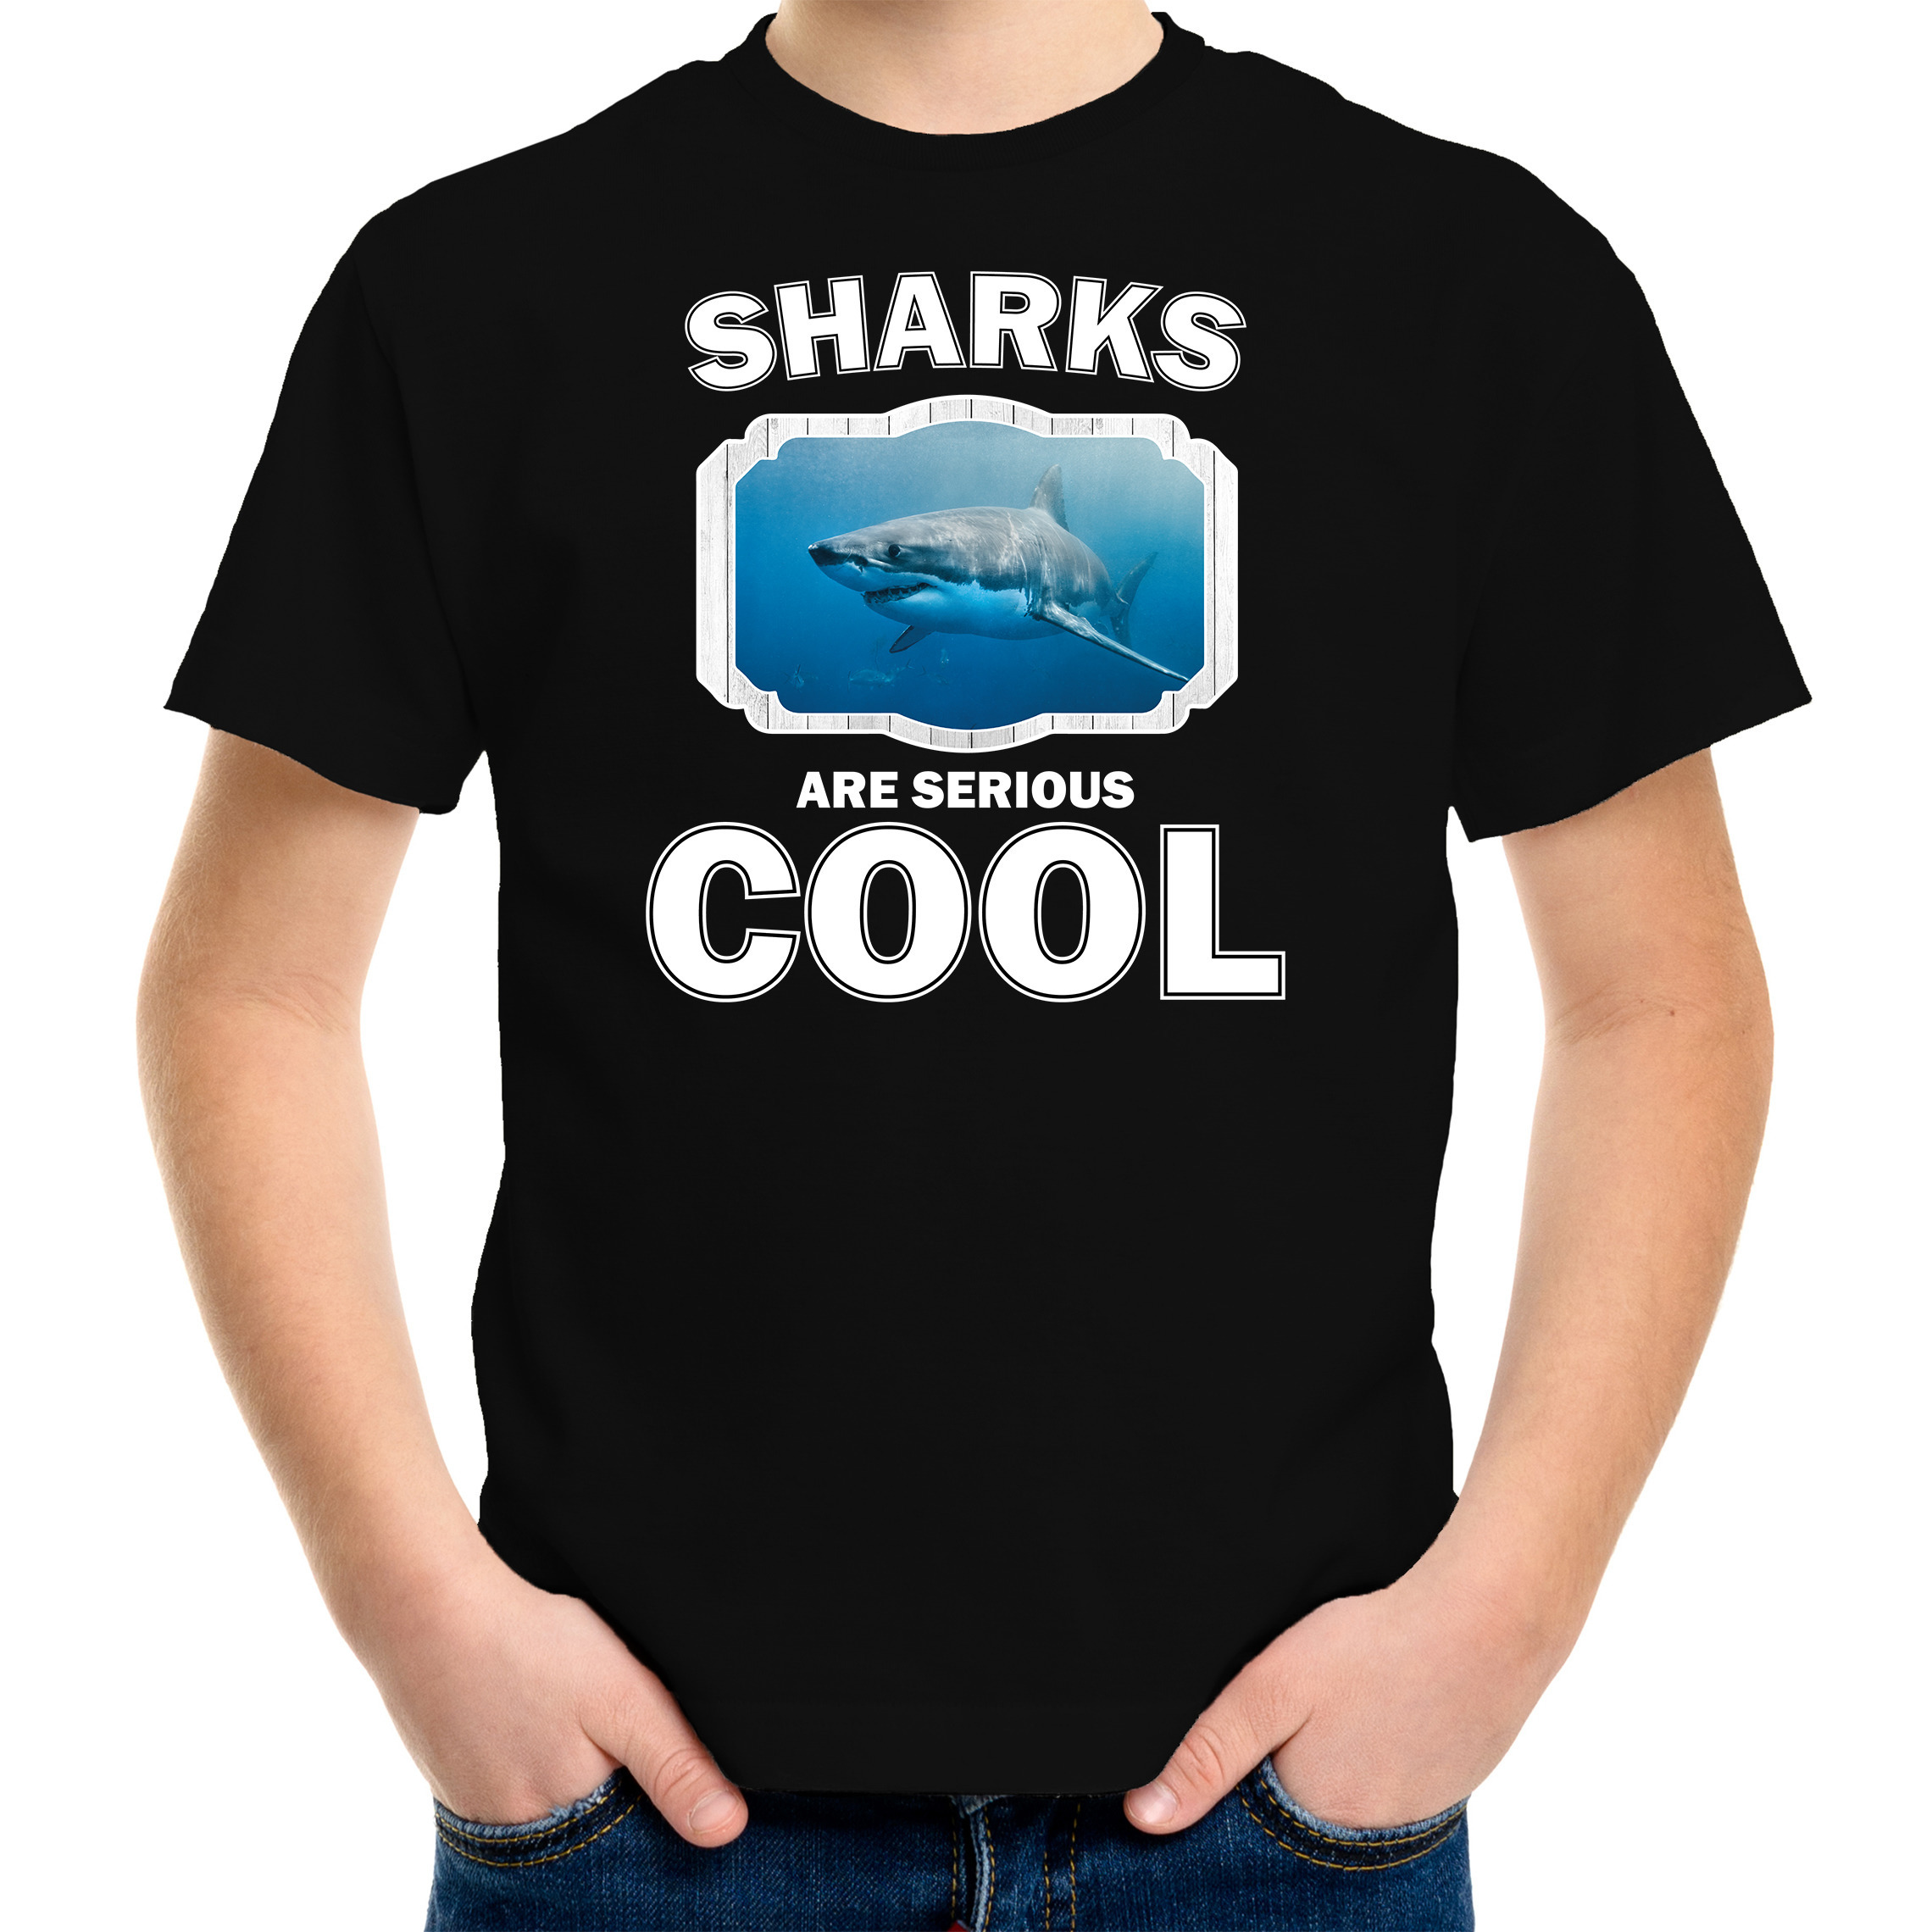 T-shirt sharks are serious cool zwart kinderen - haaien/ haai shirt